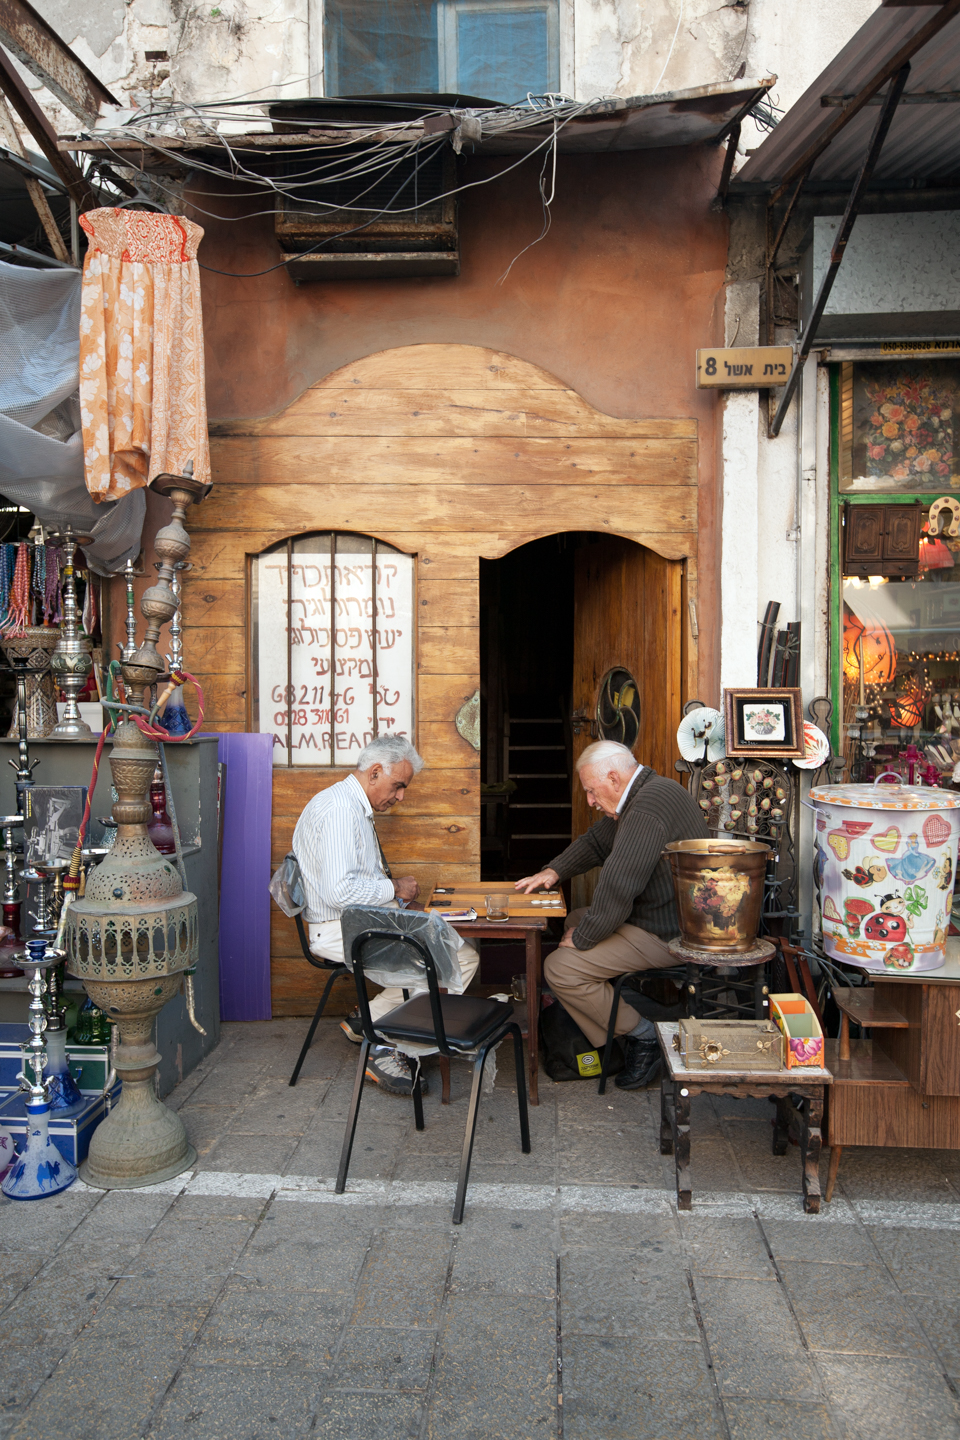 Color, Photography, Tel Aviv, Middle East, Backgammon Players, Jaffa, Israel, February 4, 2009